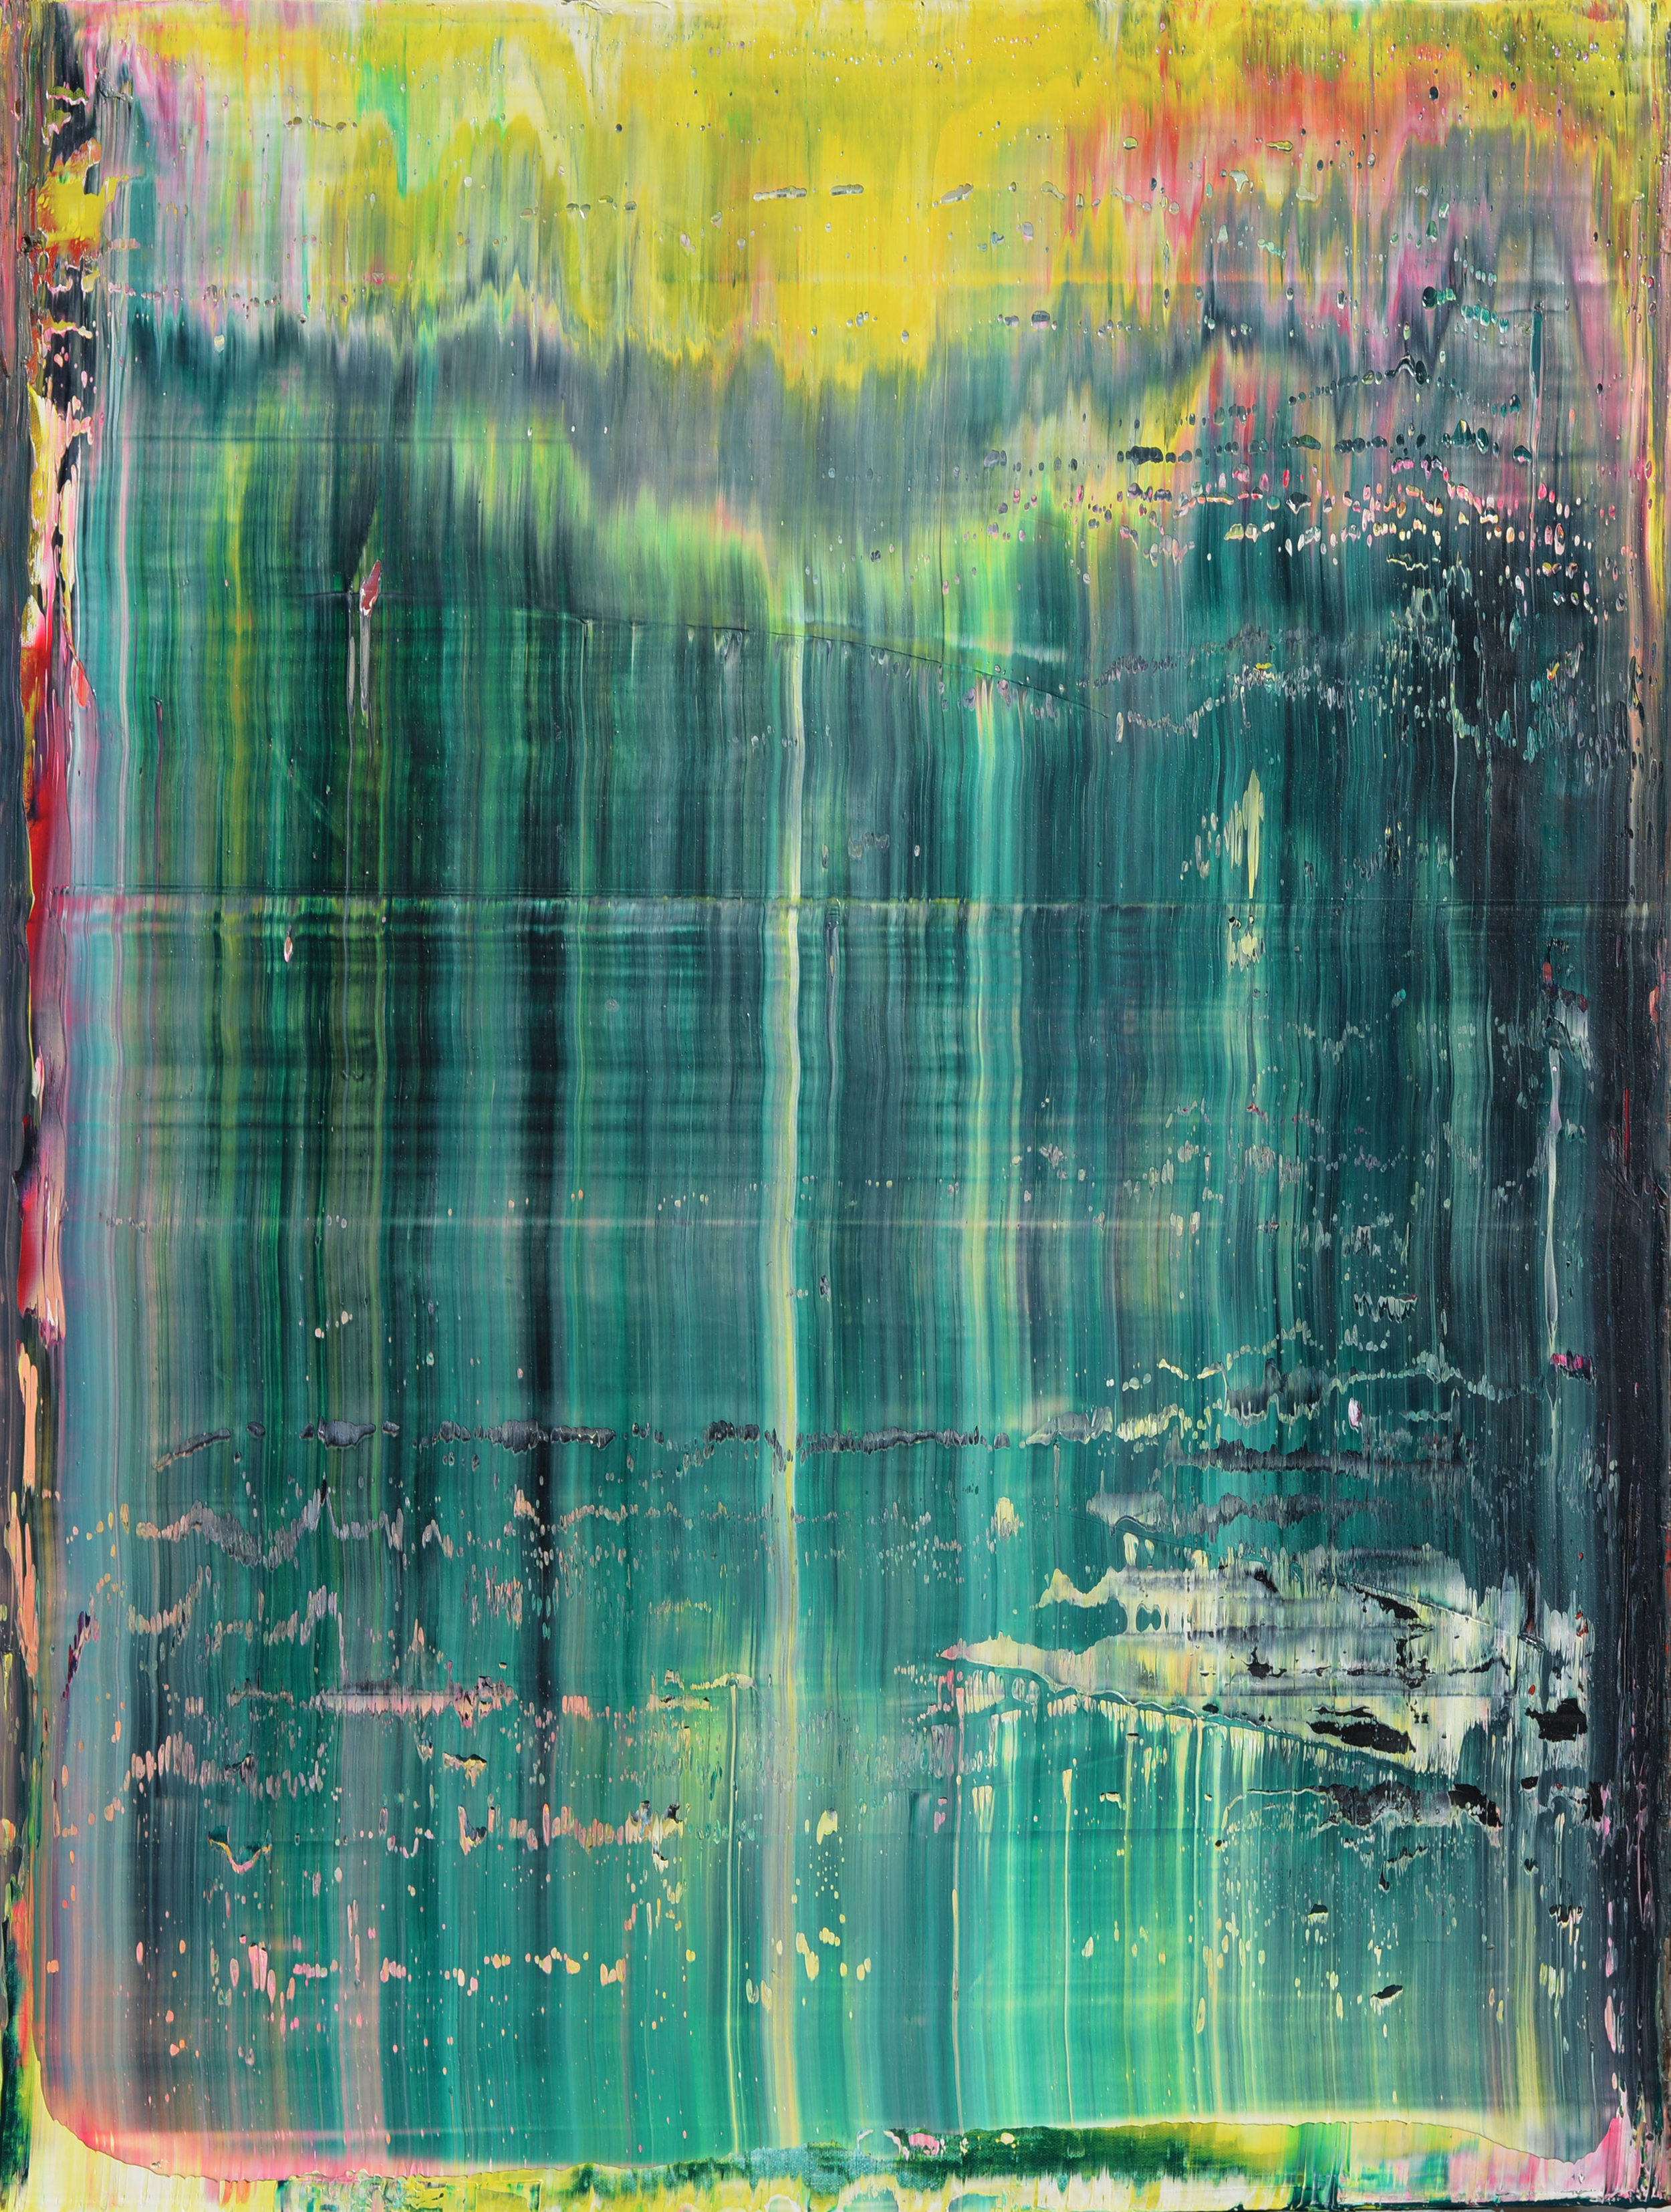 """Inside"" is an original, abstract oil painting by Los Angeles based artist, Laura Viapiano."